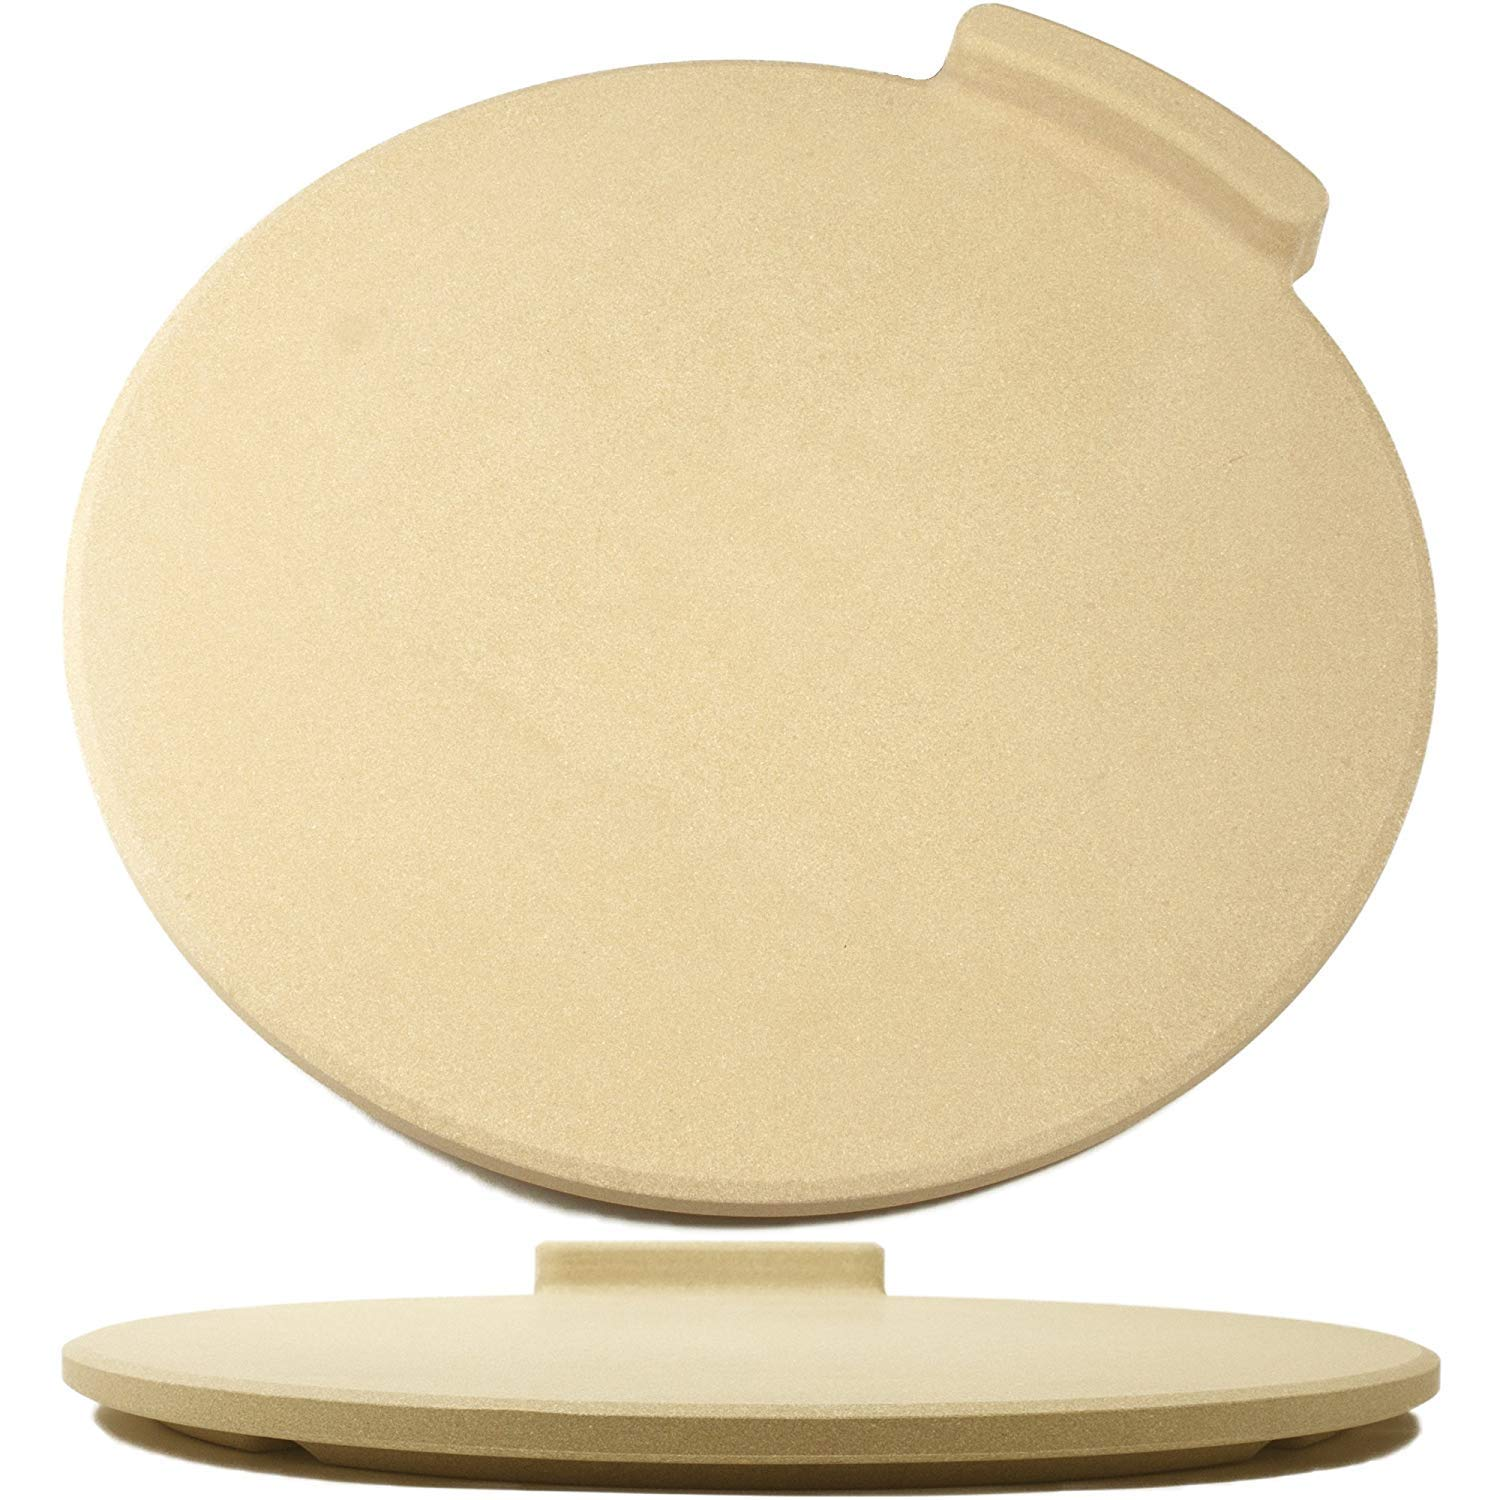 The Ultimate Pizza Stone for Oven & Grill. 16'' Round Baking Stone with Exclusive ThermaShock Protection & Core Convection Technology for the Perfect Crispy Crust on Pizzas & Bread. No-Spill Stopper